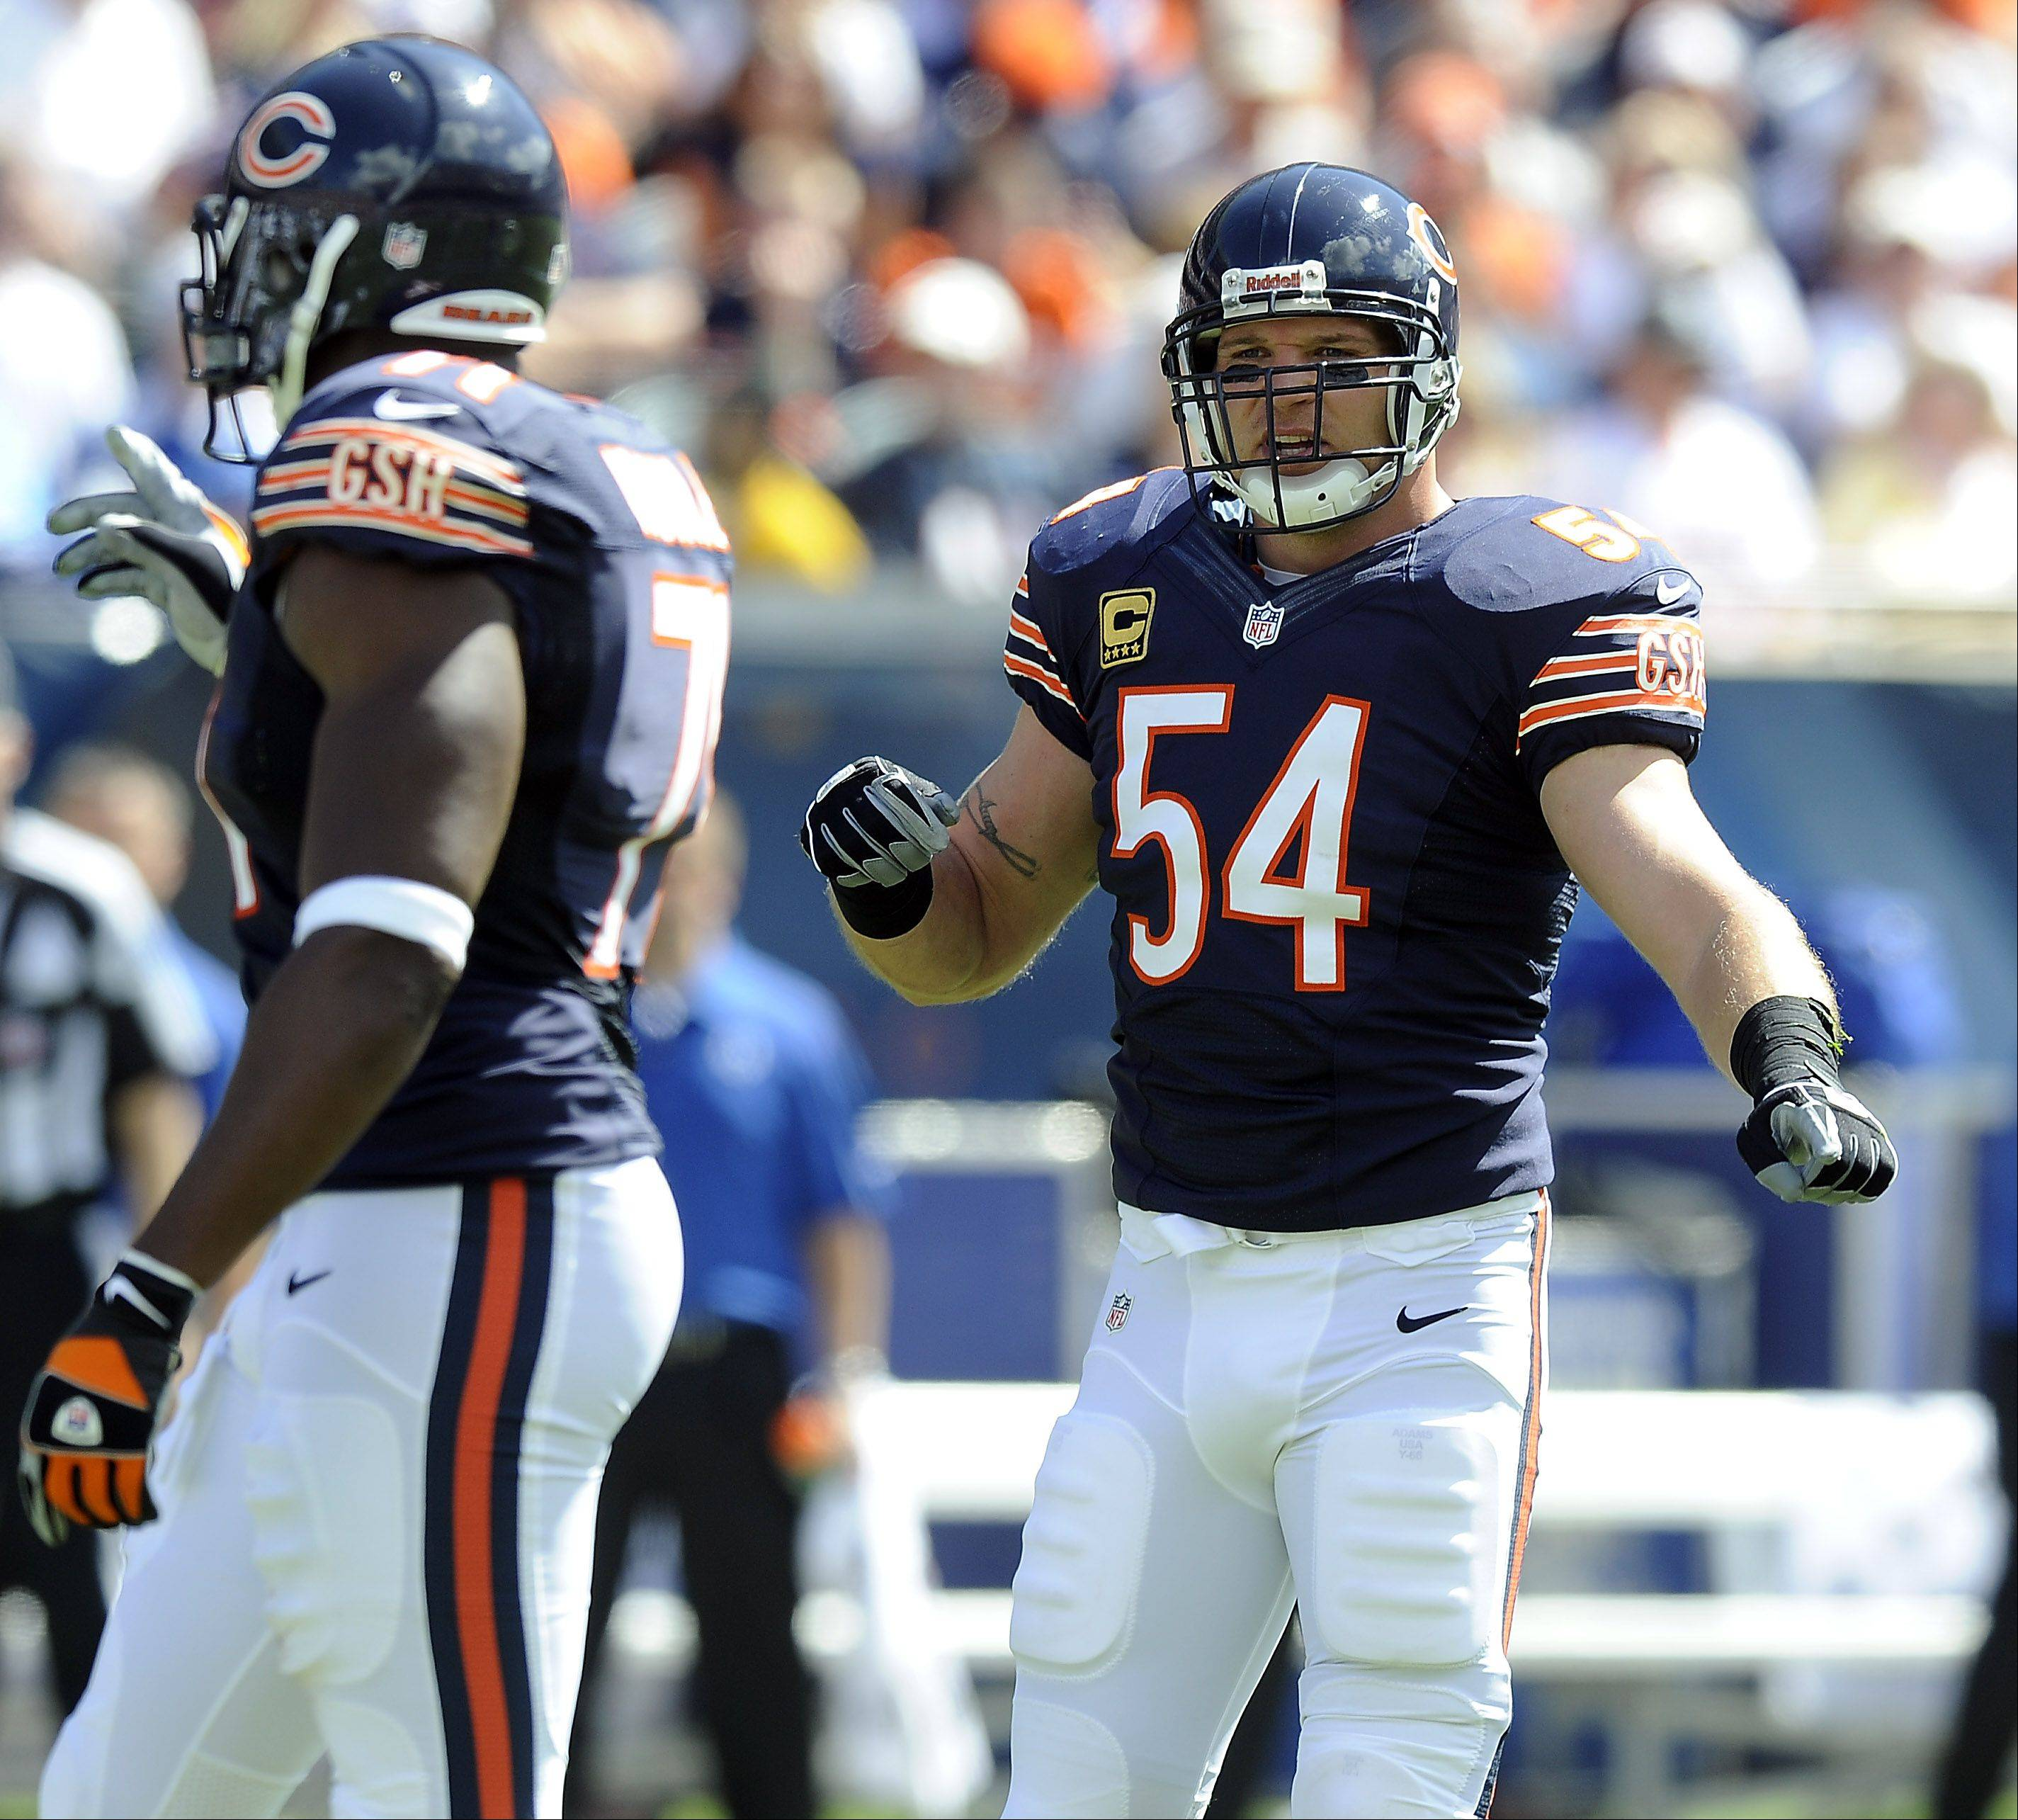 Bears middle linebacker Brian Urlacher played the first half Sunday against the Colts at Soldier Field.